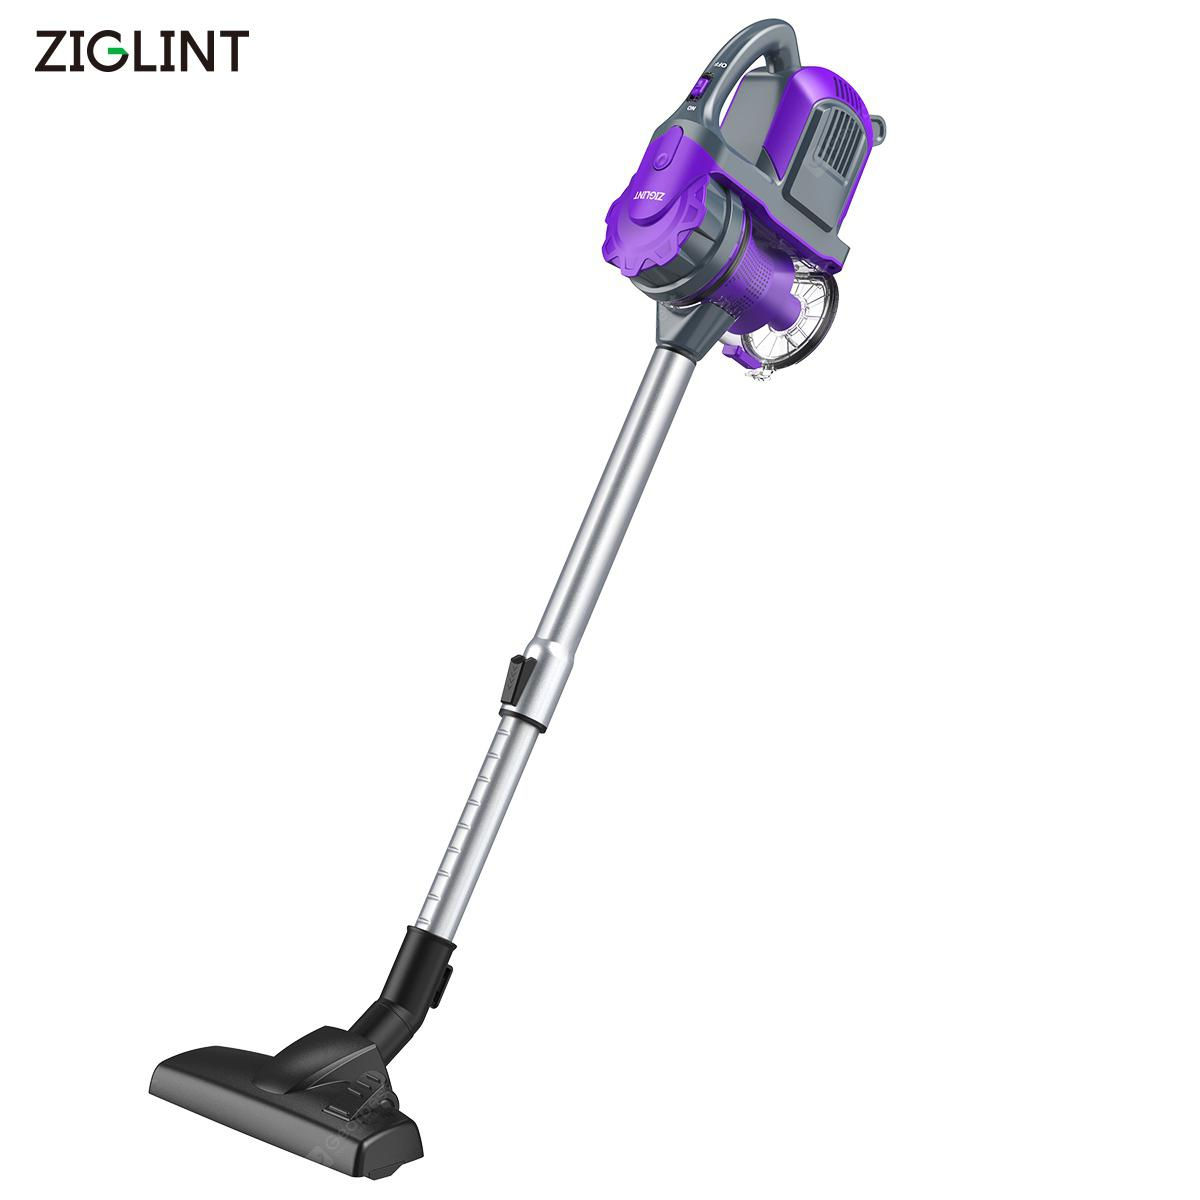 Ziglint Z3 Portable Cordless Handheld Vacuum Cleaner 120W - PURPLE EU